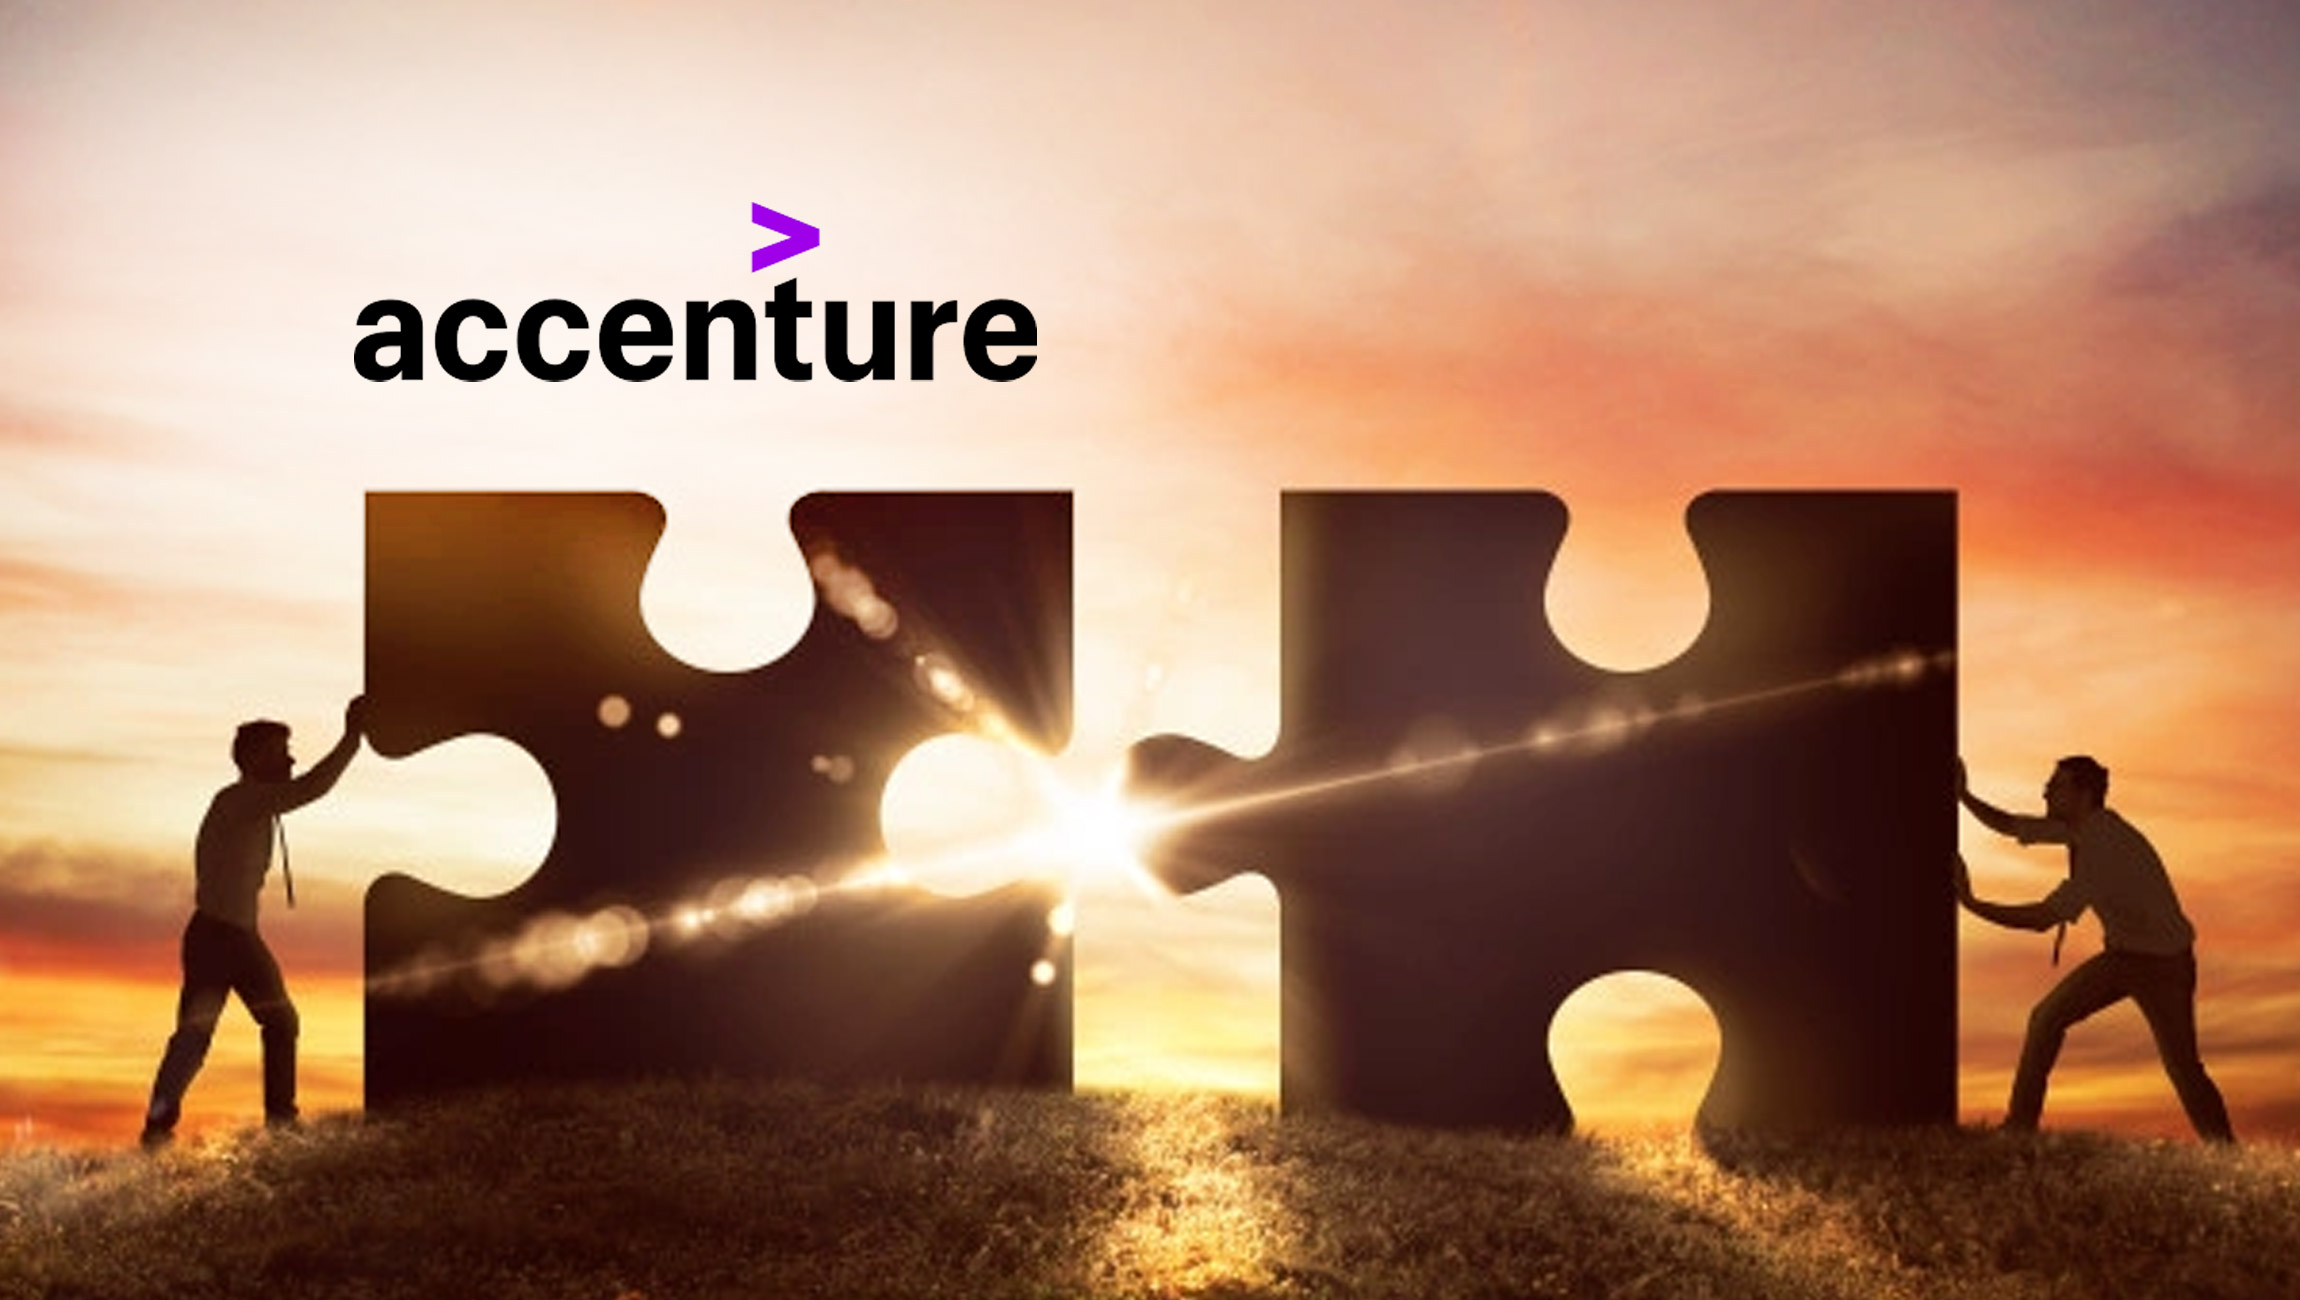 Accenture To Acquire Engineering Capabilities From DI Square To Strengthen PLM And ALM Capabilities For Manufacturing Clients